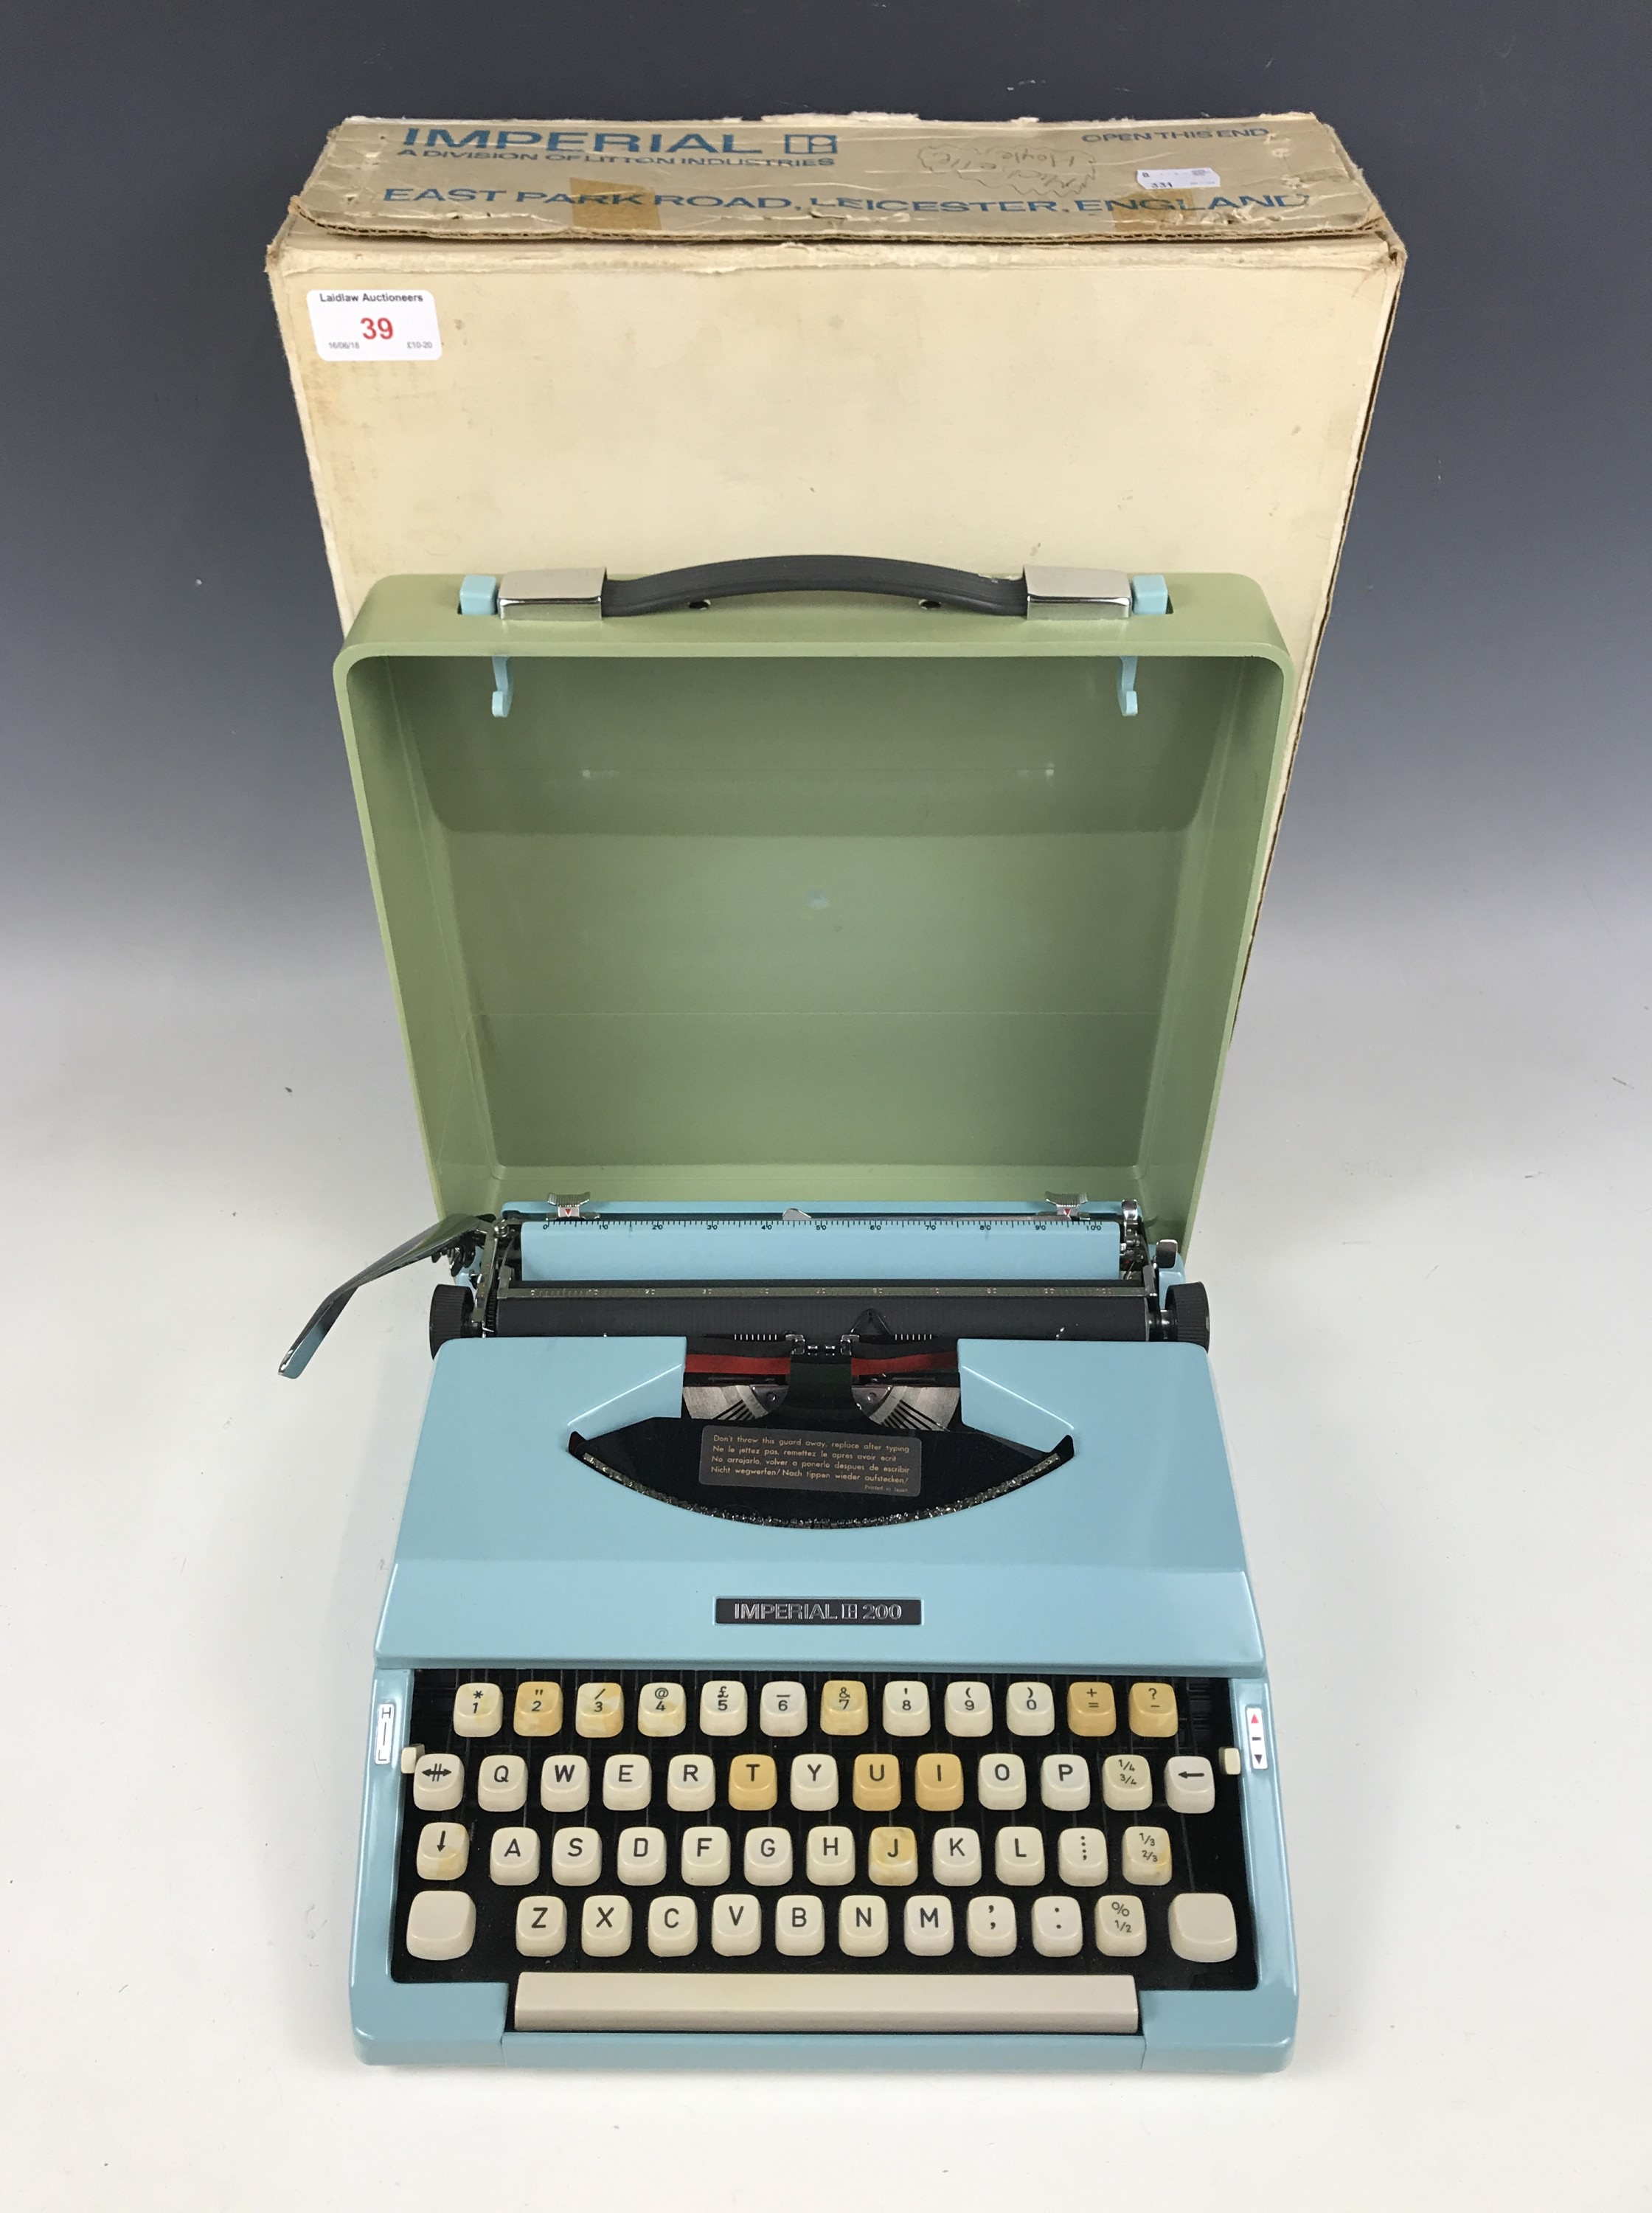 Lot 39 - A vintage Imperial 200 portable typewriter